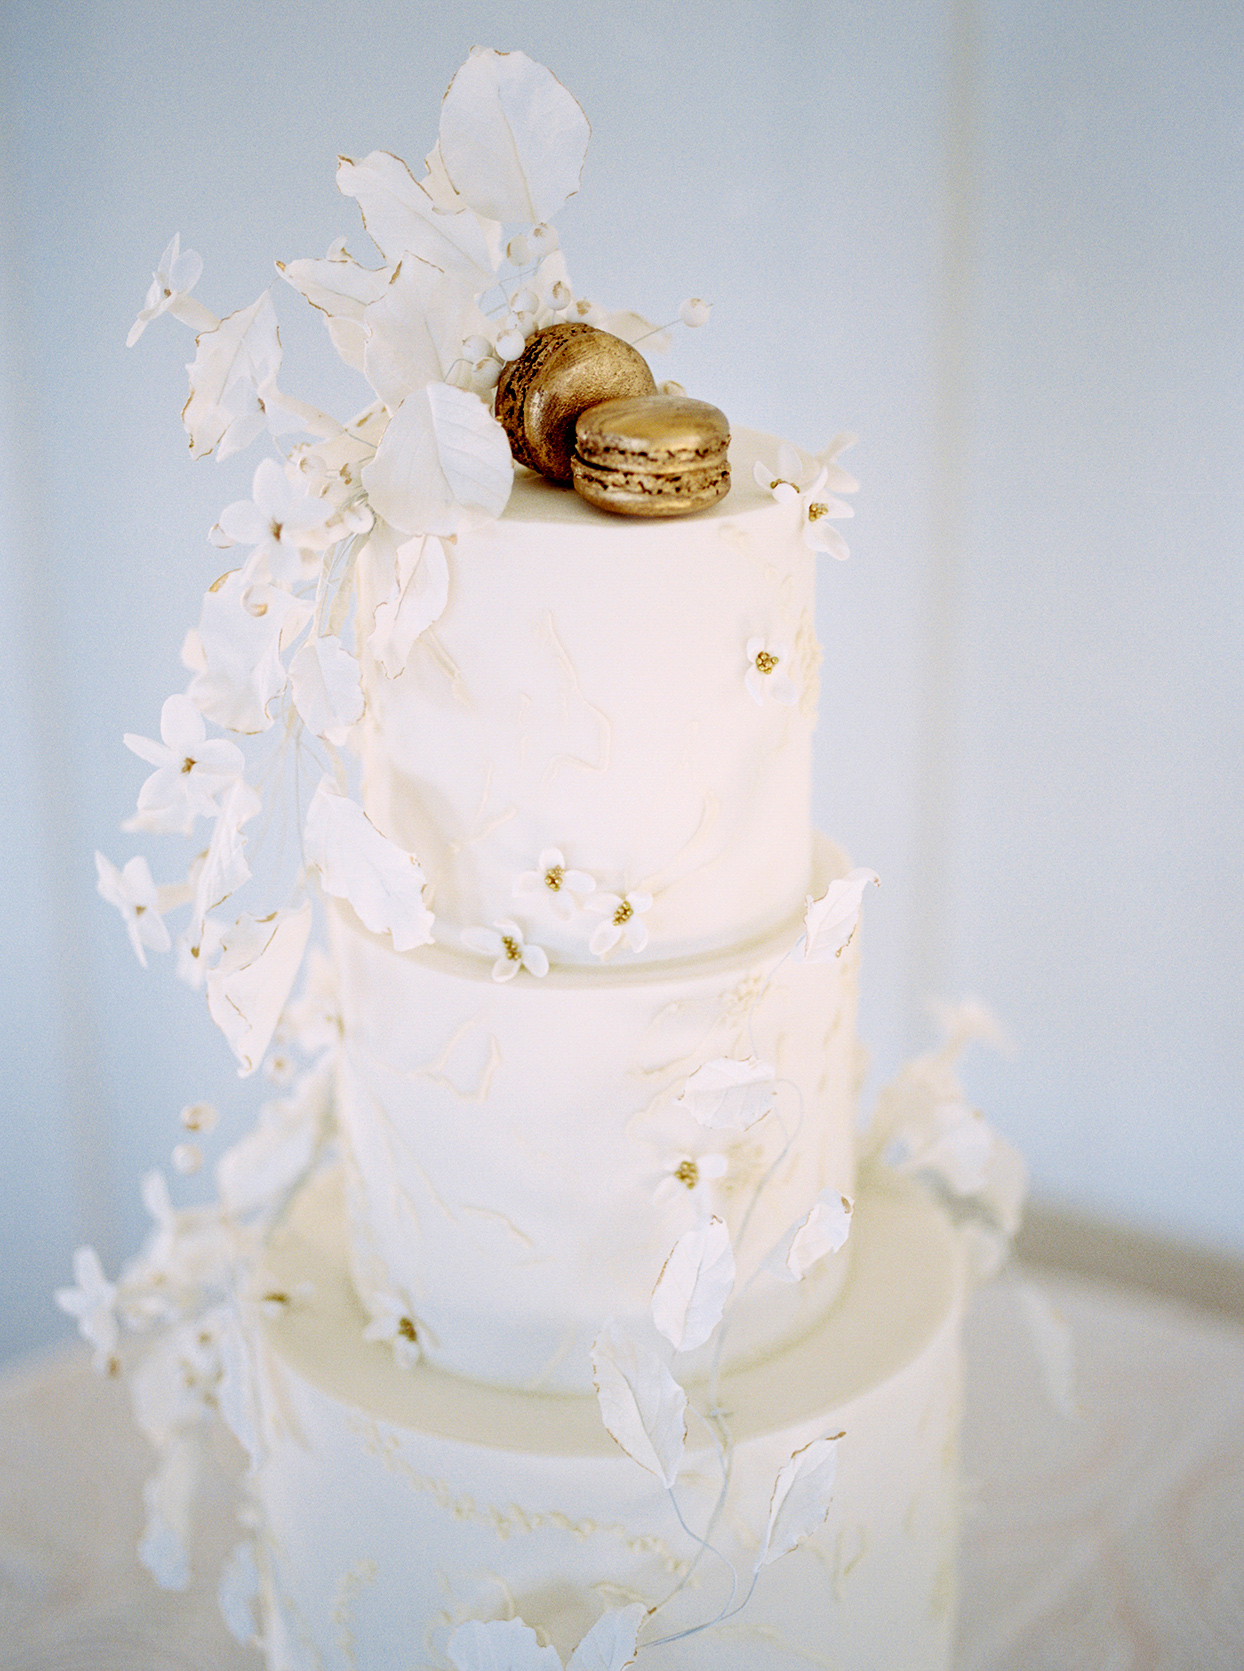 White wedding cake from Miam Cake with gold macarons